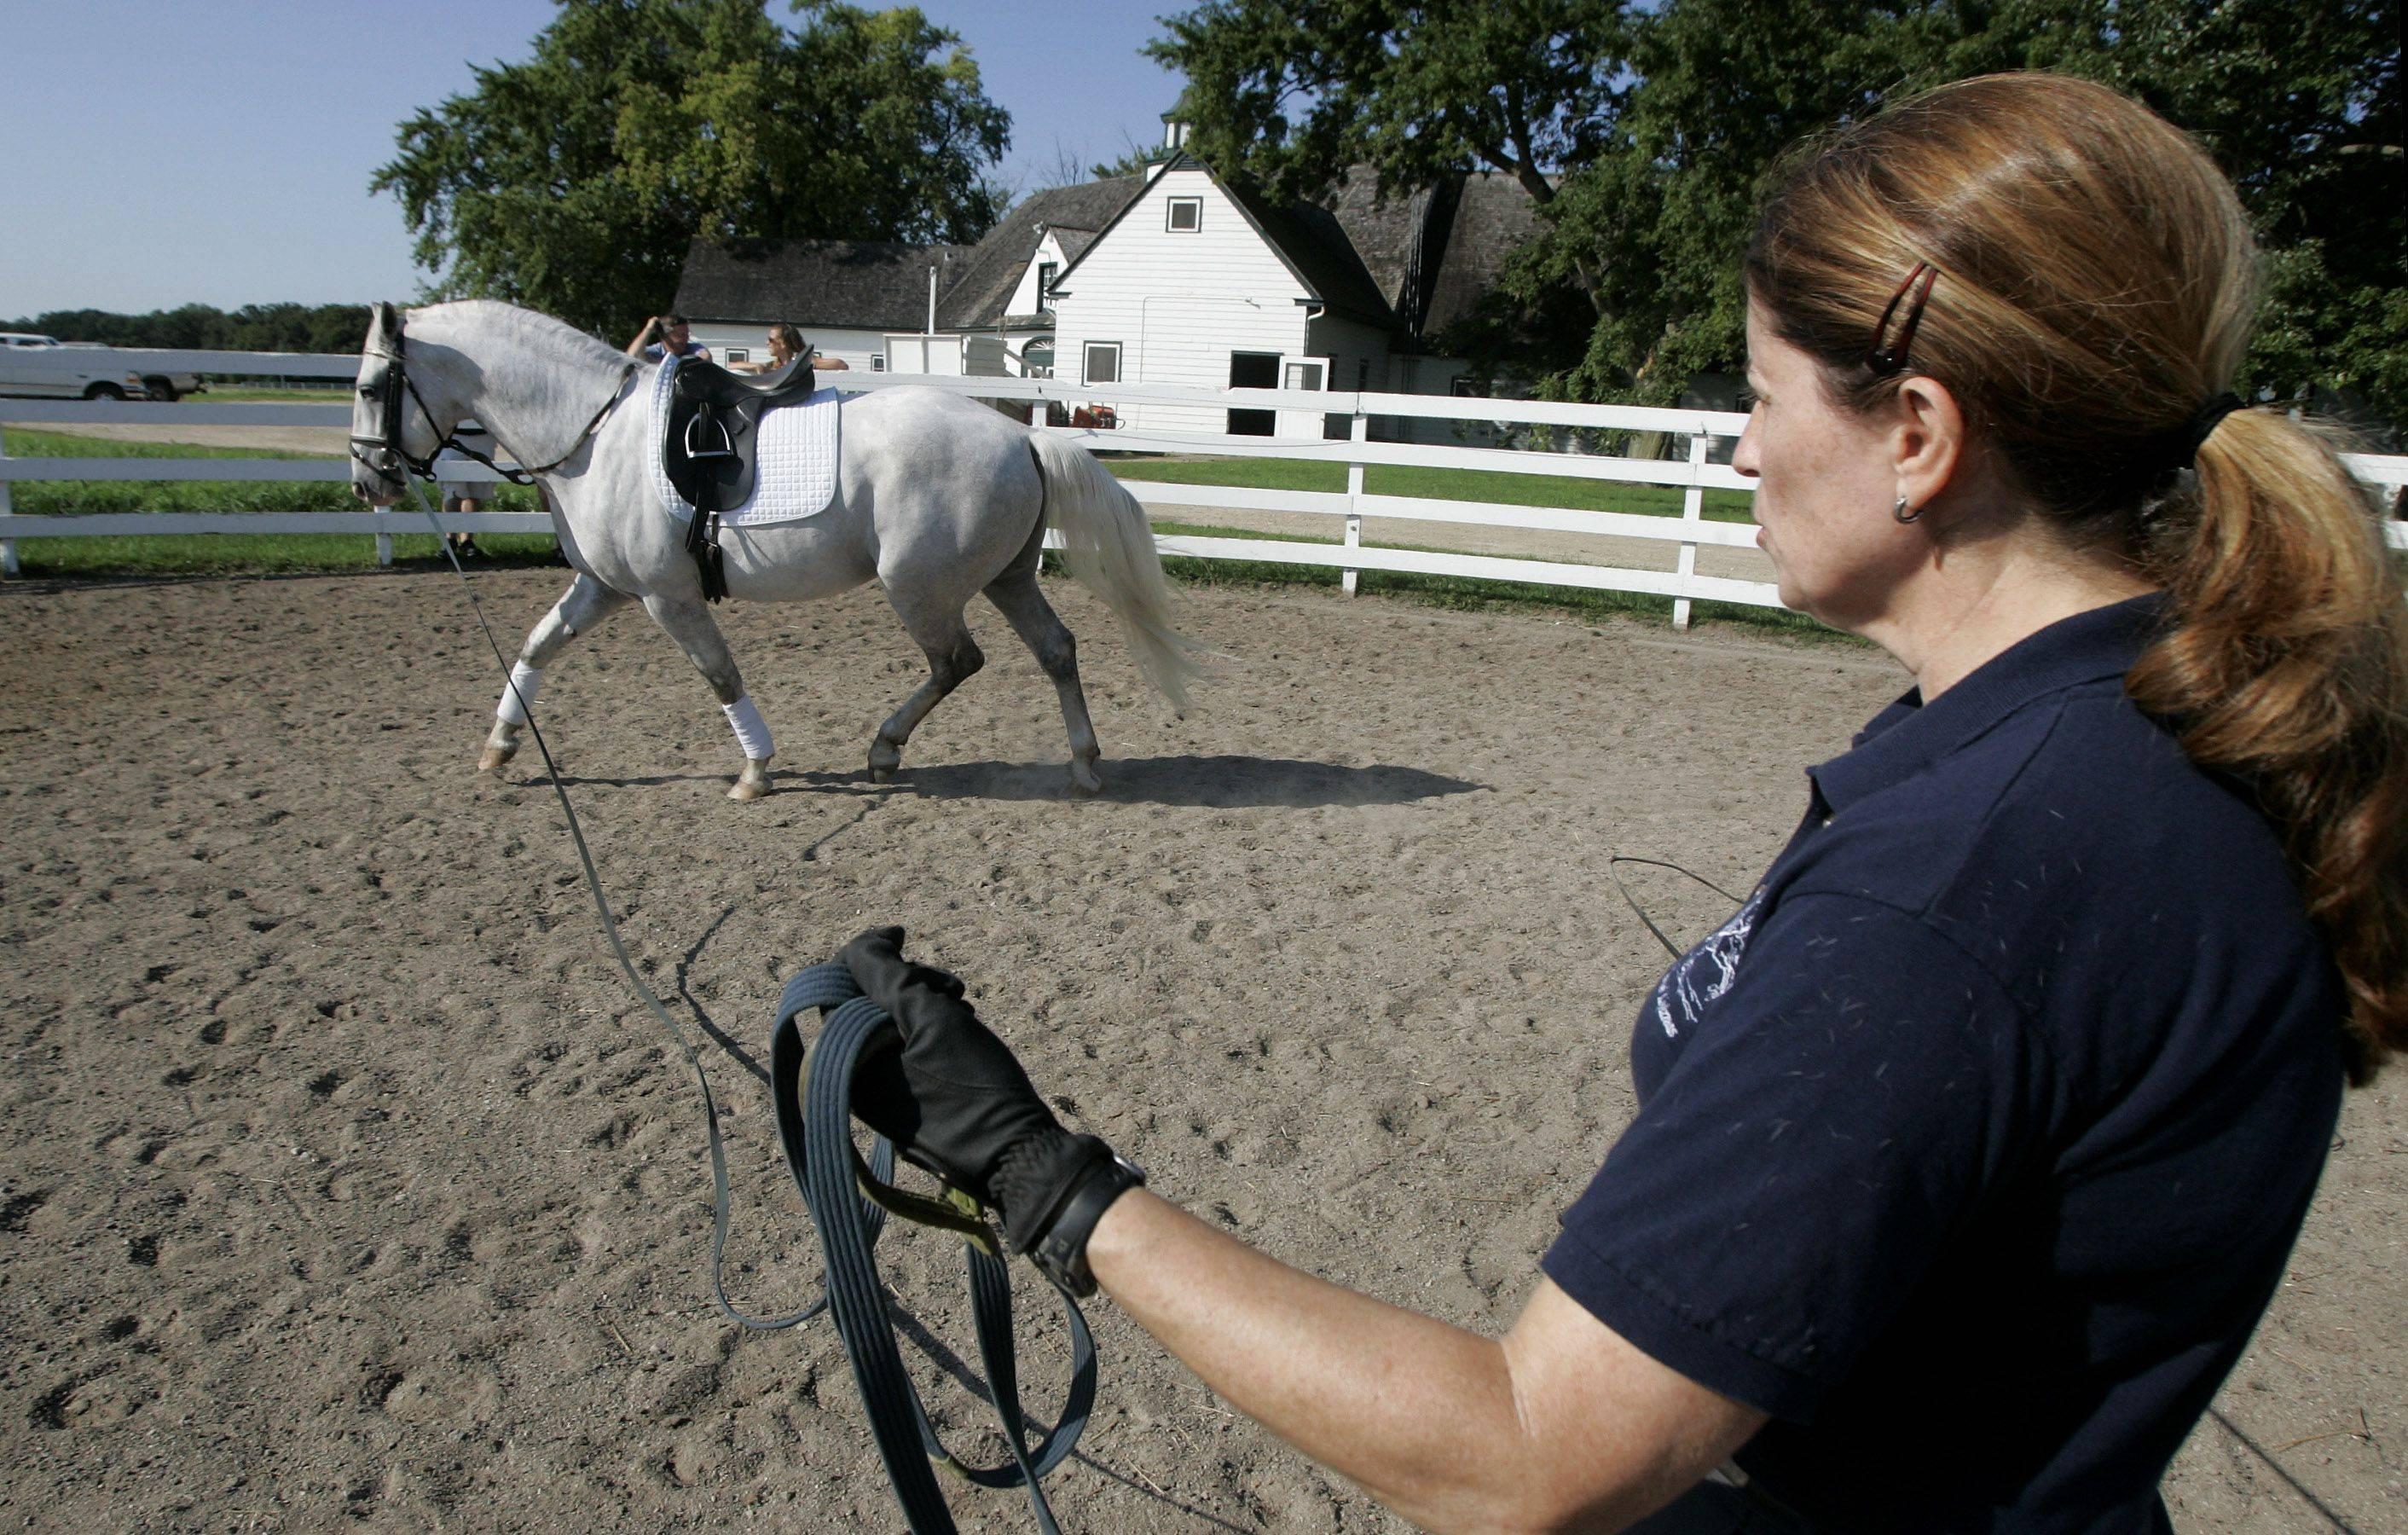 Dressage trainer Eliza Ardizzone works with four-year-old Favory VI Ivana on the long line as young horses are trained into talented stallions at Tempel Farms in Old Mill Creek. The organization has taken this season off for the purpose of breeding and training their horses.